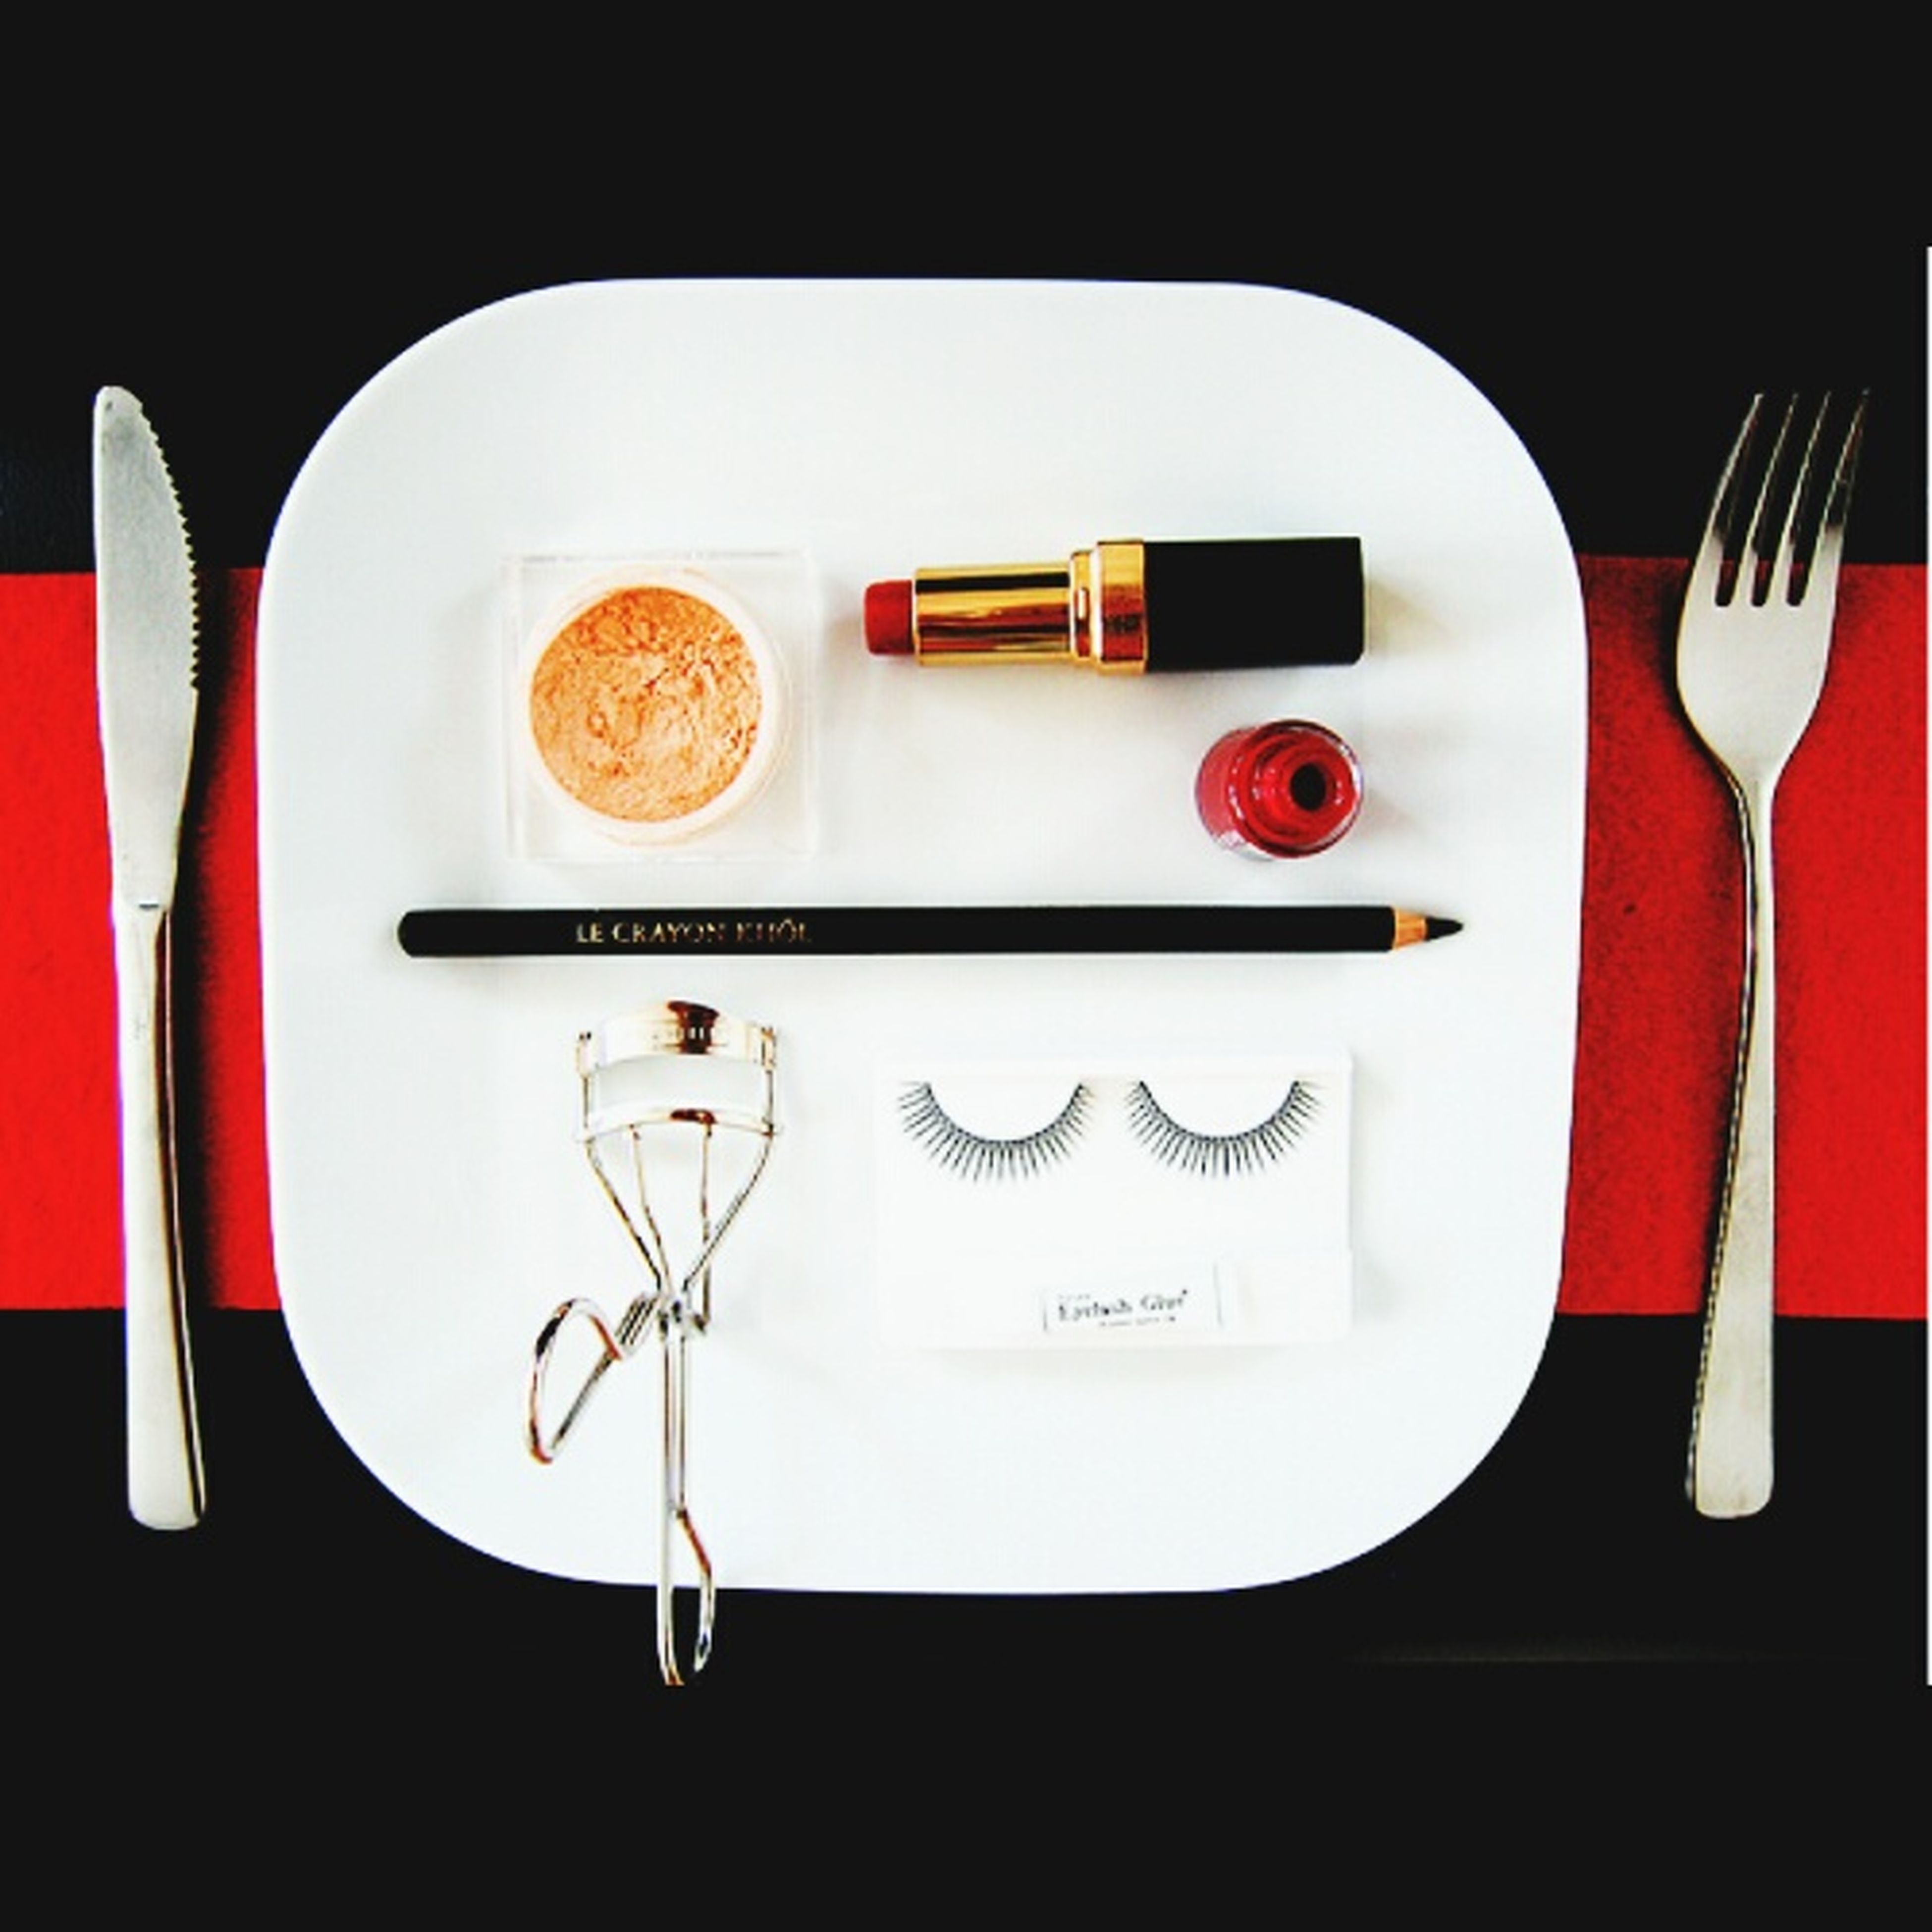 indoors, food and drink, still life, table, red, food, plate, close-up, fork, freshness, studio shot, communication, ready-to-eat, high angle view, text, western script, indulgence, white color, no people, paper